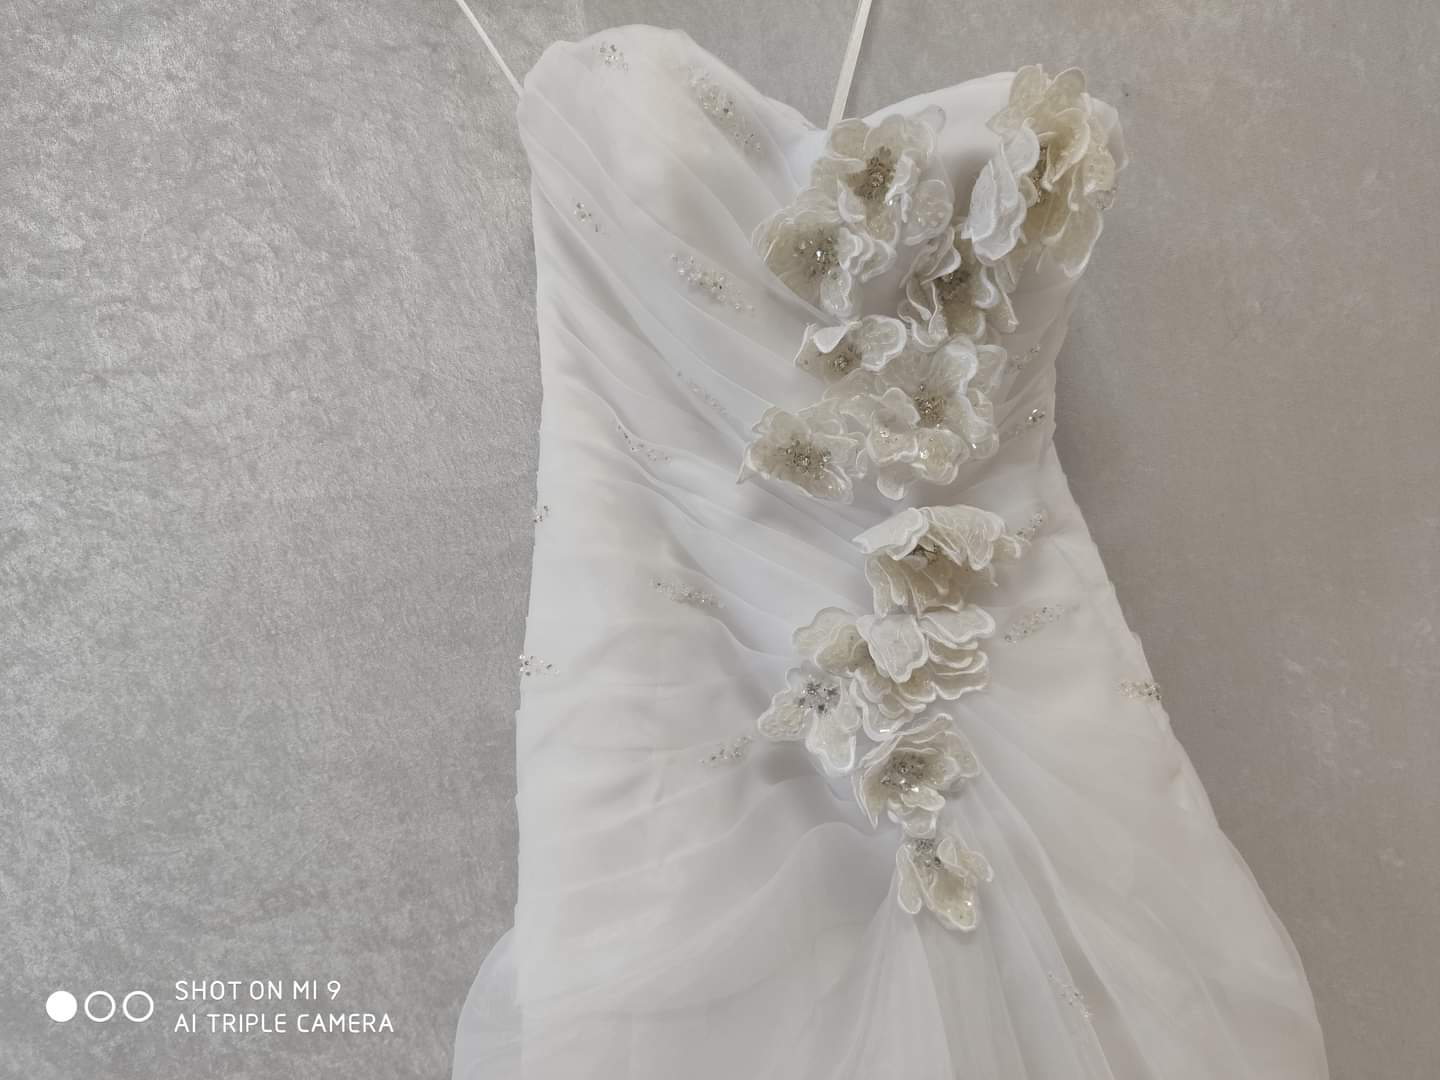 Twk wedding dresses for sale... Size small